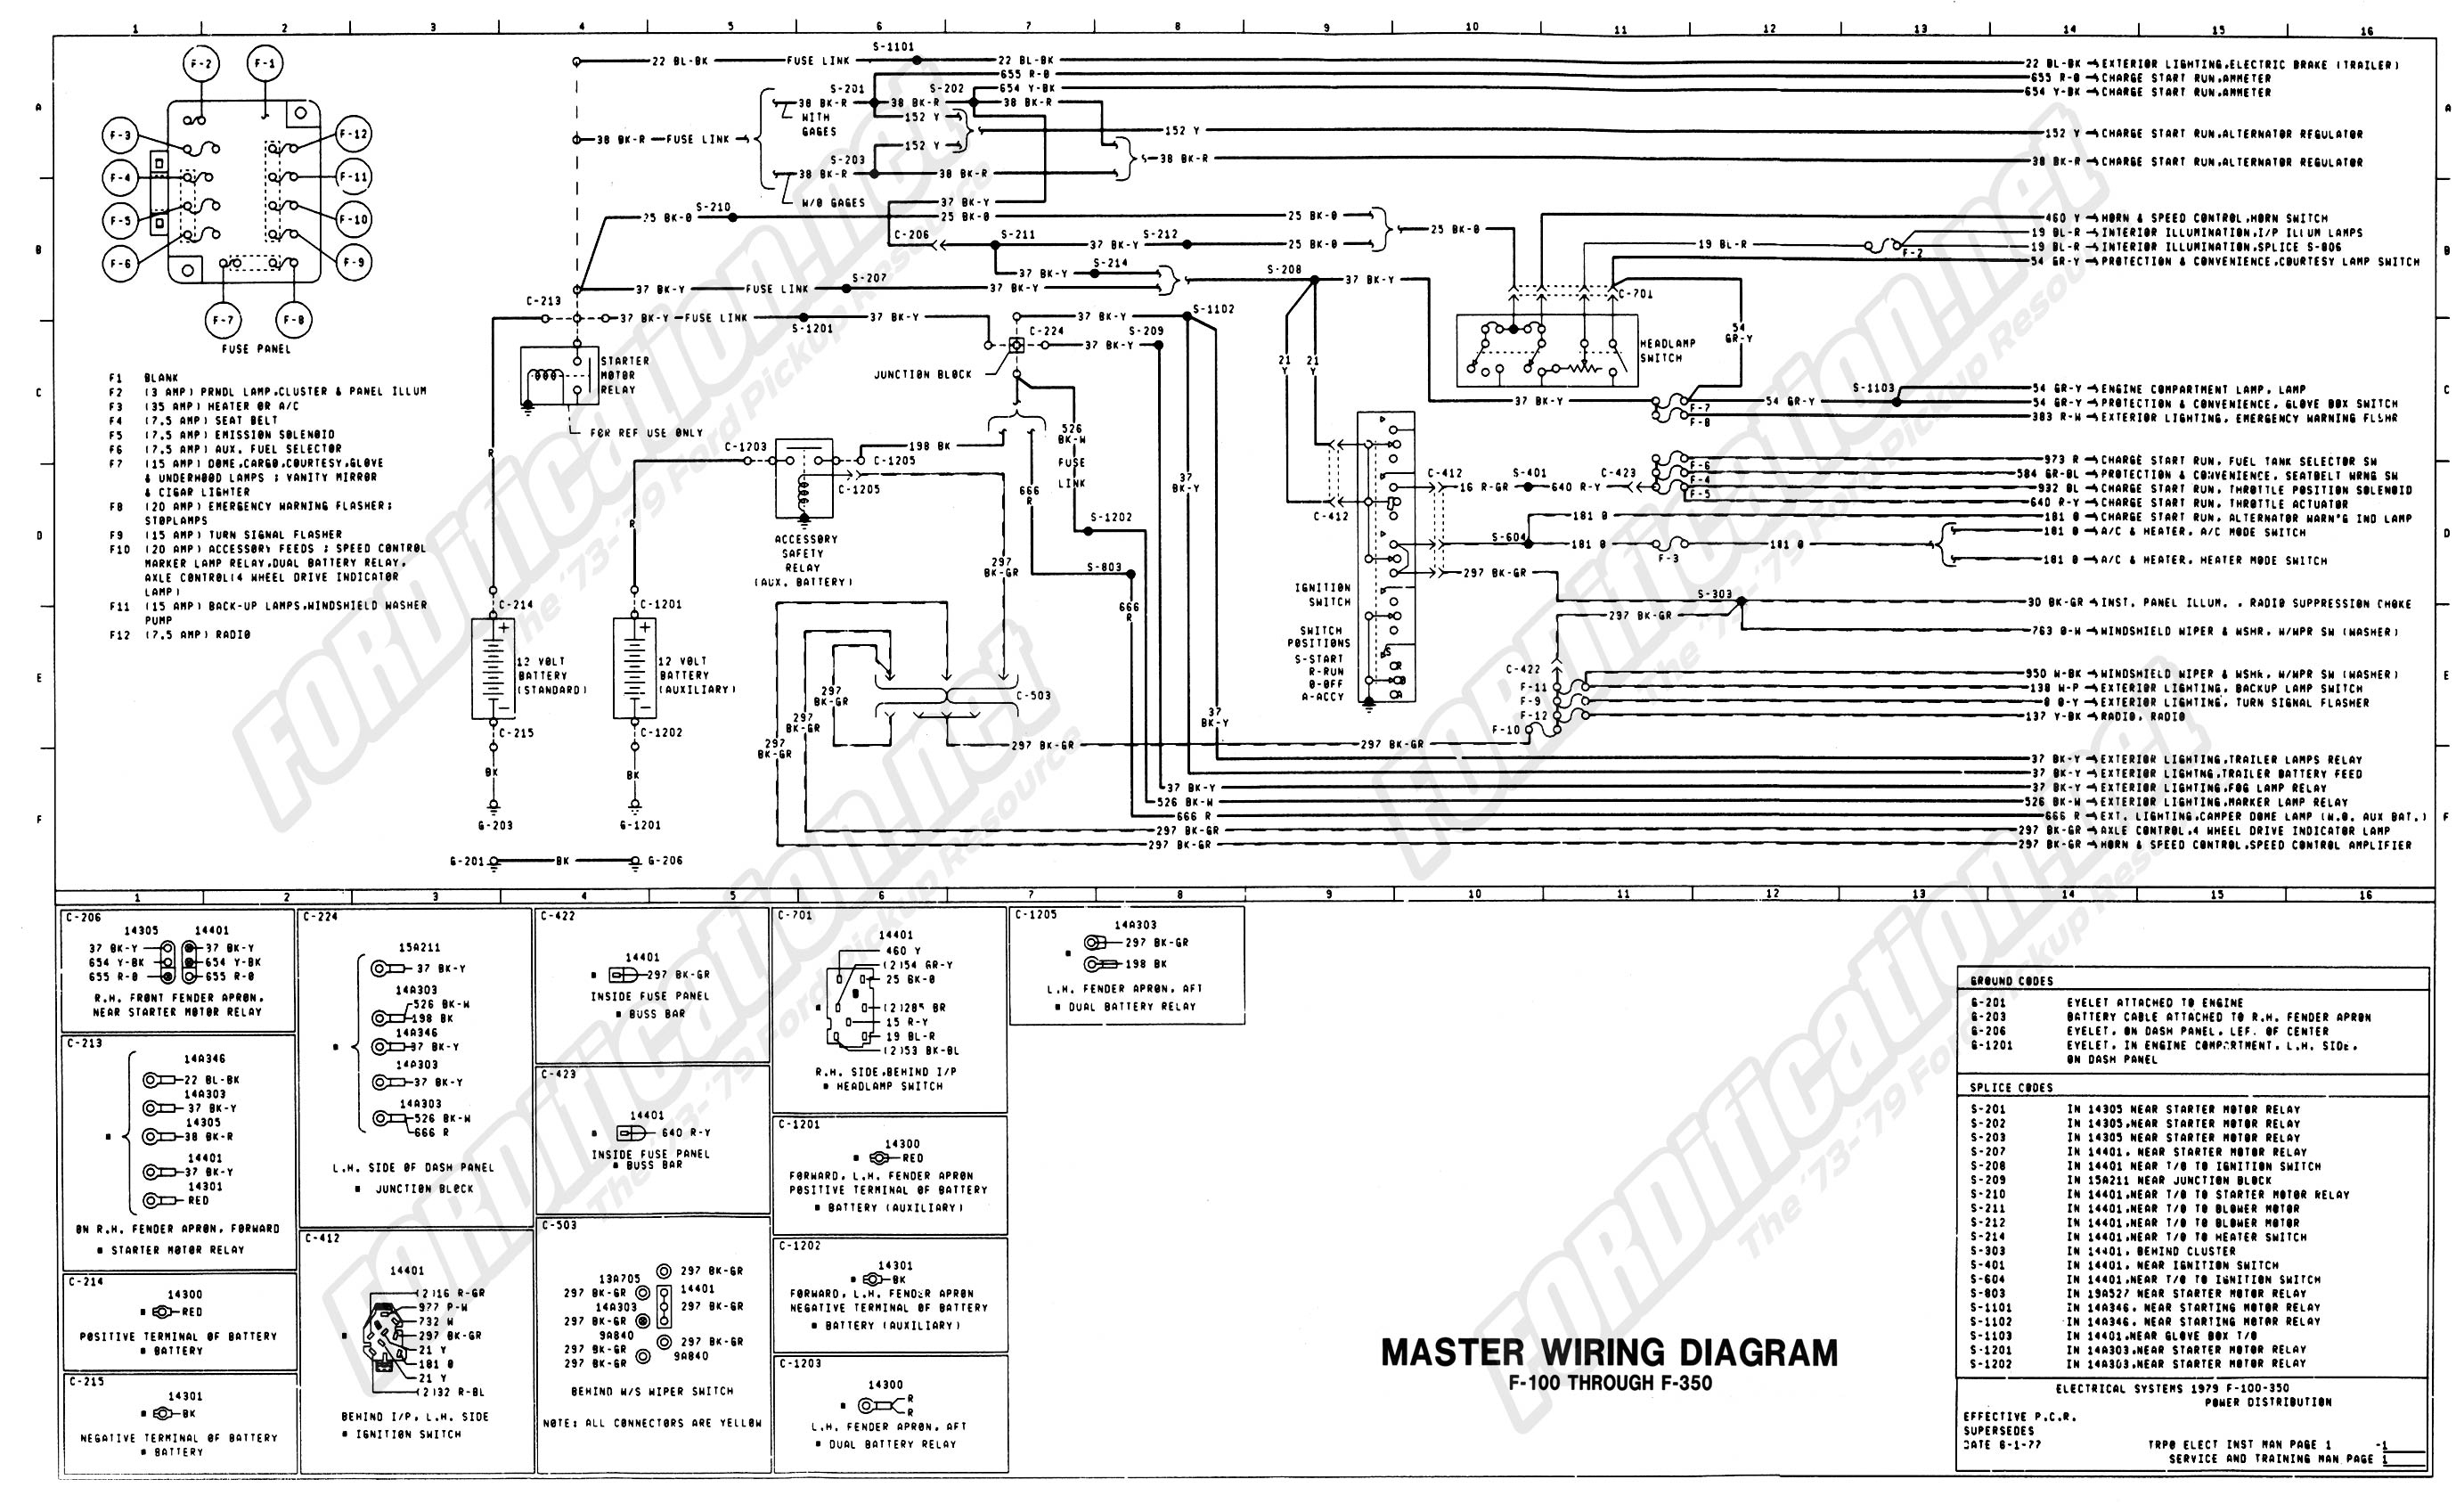 case ih 7140 wiring schematic Collection-Ford F150 Headlight assembly Diagram Luxury 1973 1979 ford Truck Wiring Diagrams & Schematics fordification 8-g